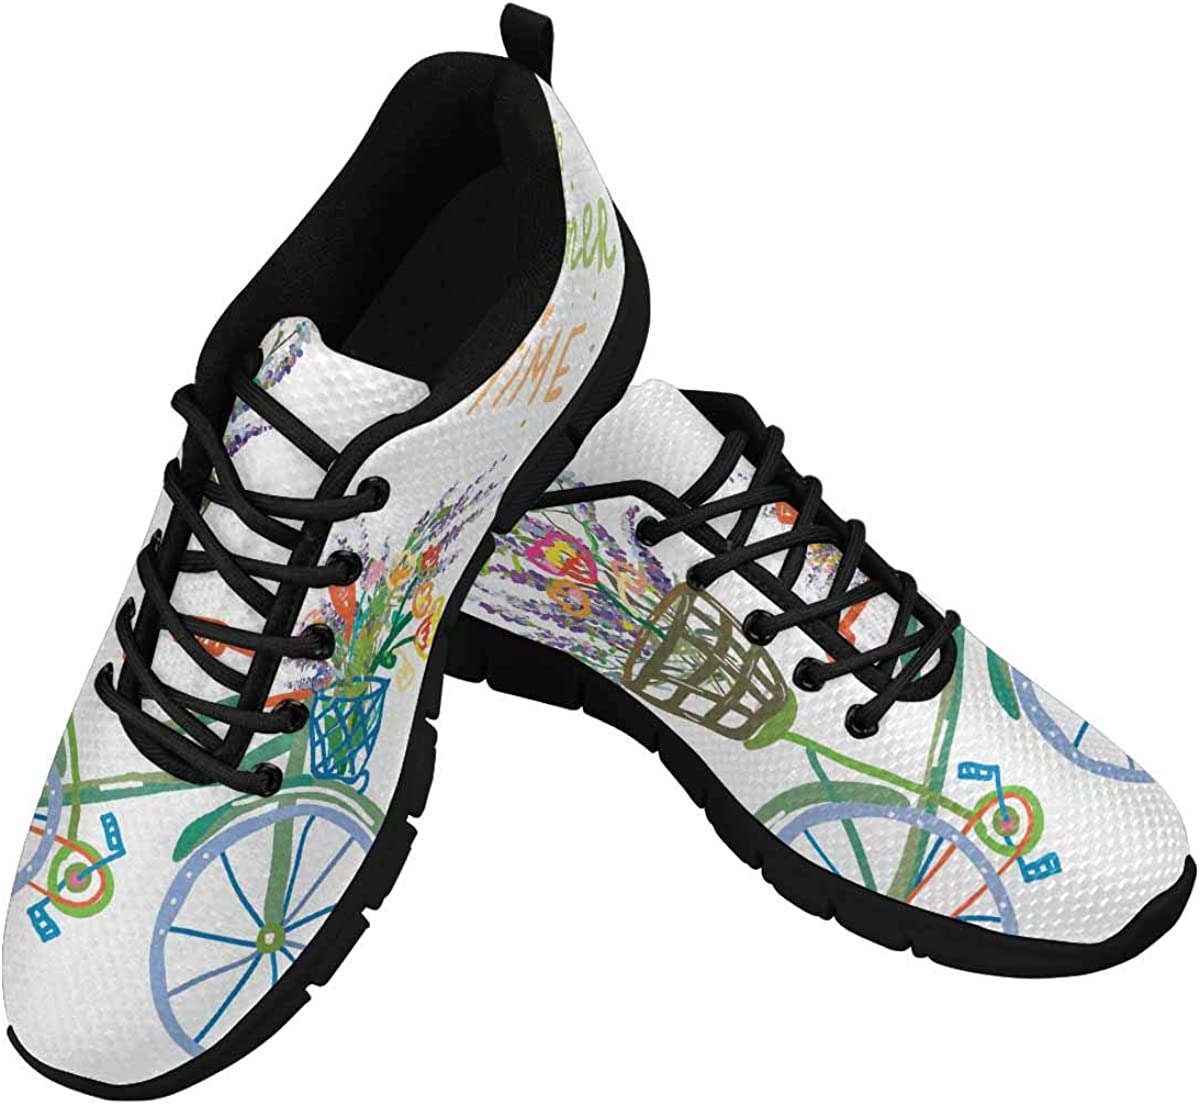 InterestPrint Happy Summer Time with Bicycle Women Walking Shoes Comfortable Lightweight Work Casual Travel Sneakers